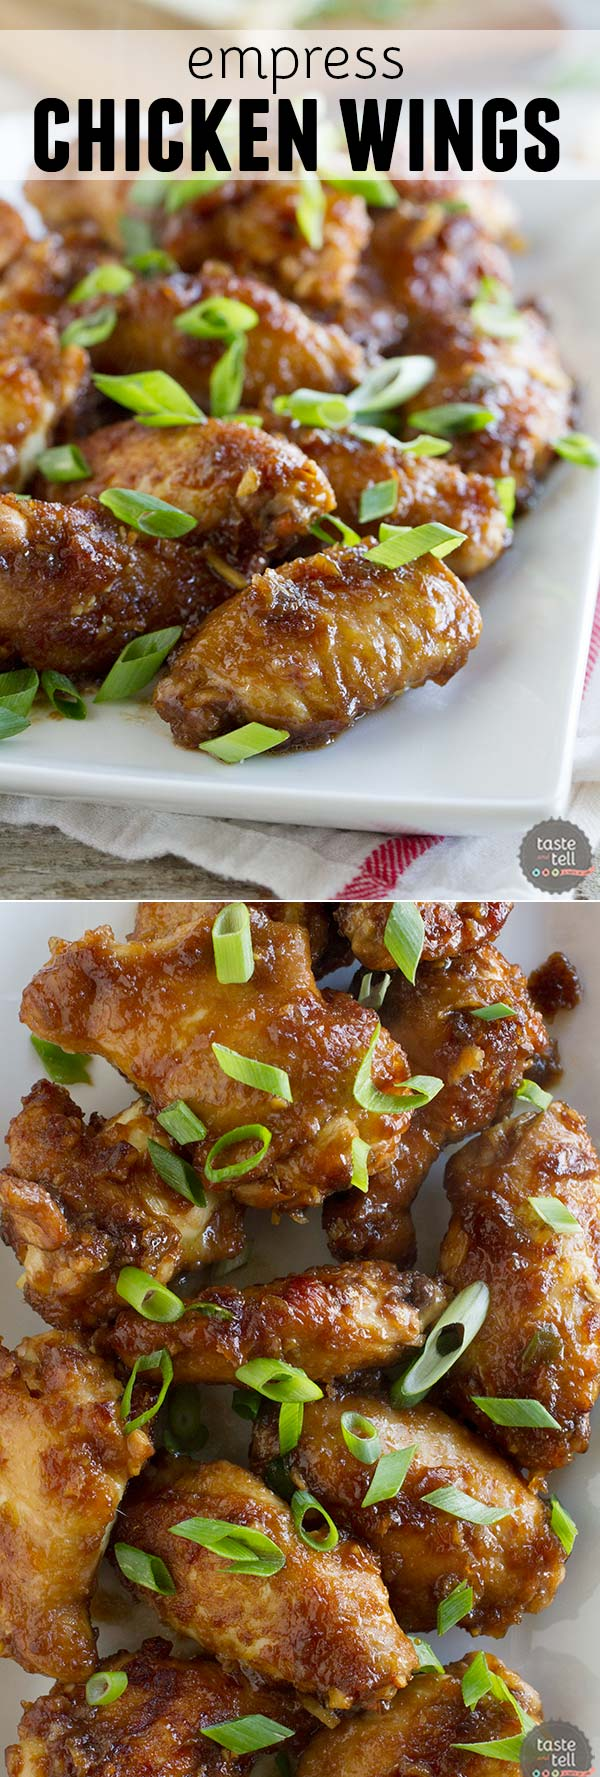 Serve your chicken wings with an Asian twist.  These Empress Chicken Wings are quickly marinated in a soy sauce and ginger marinade for a full flavored appetizer.